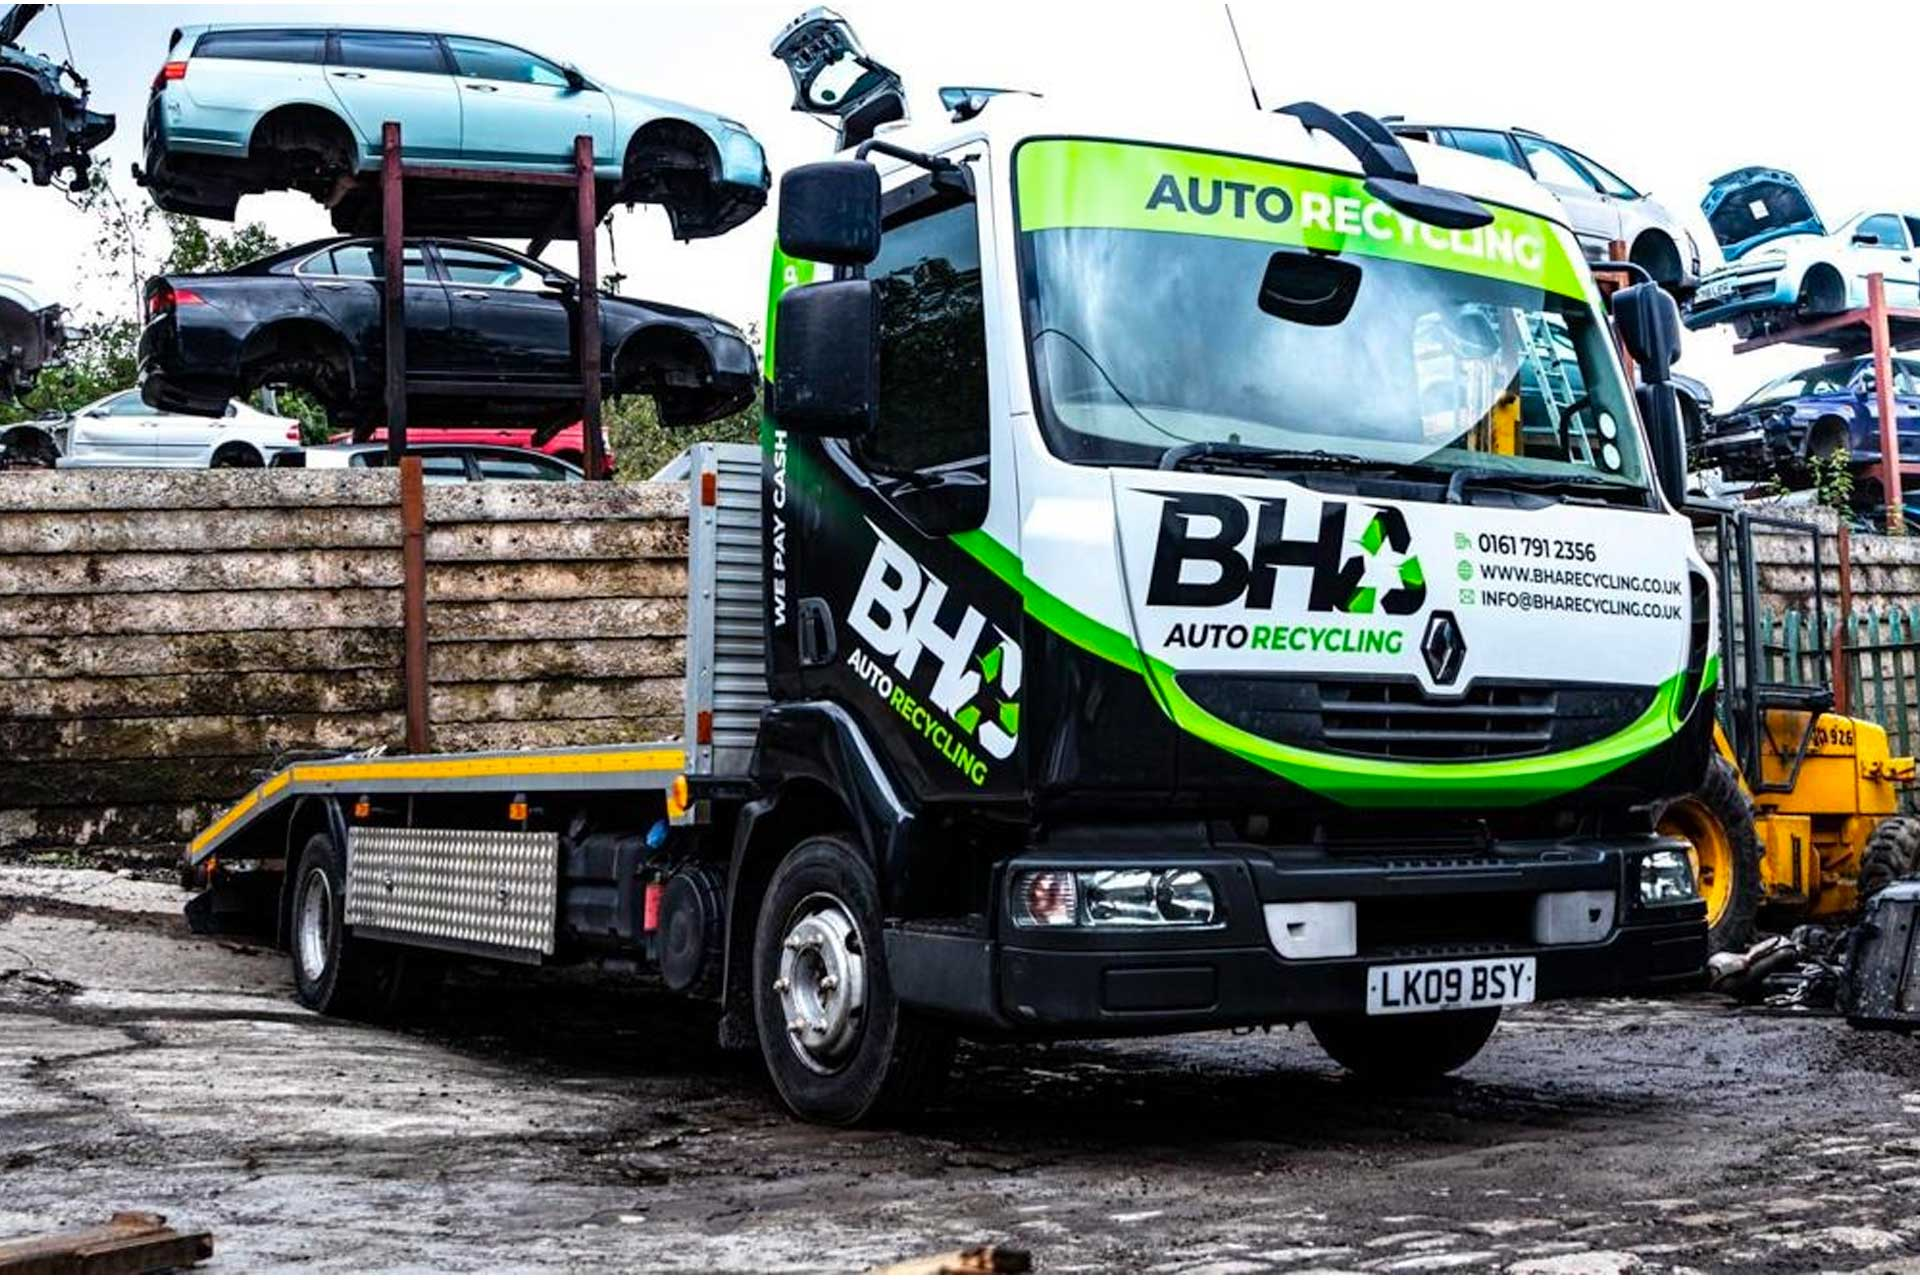 Vehicle Recovery Services in Oldham